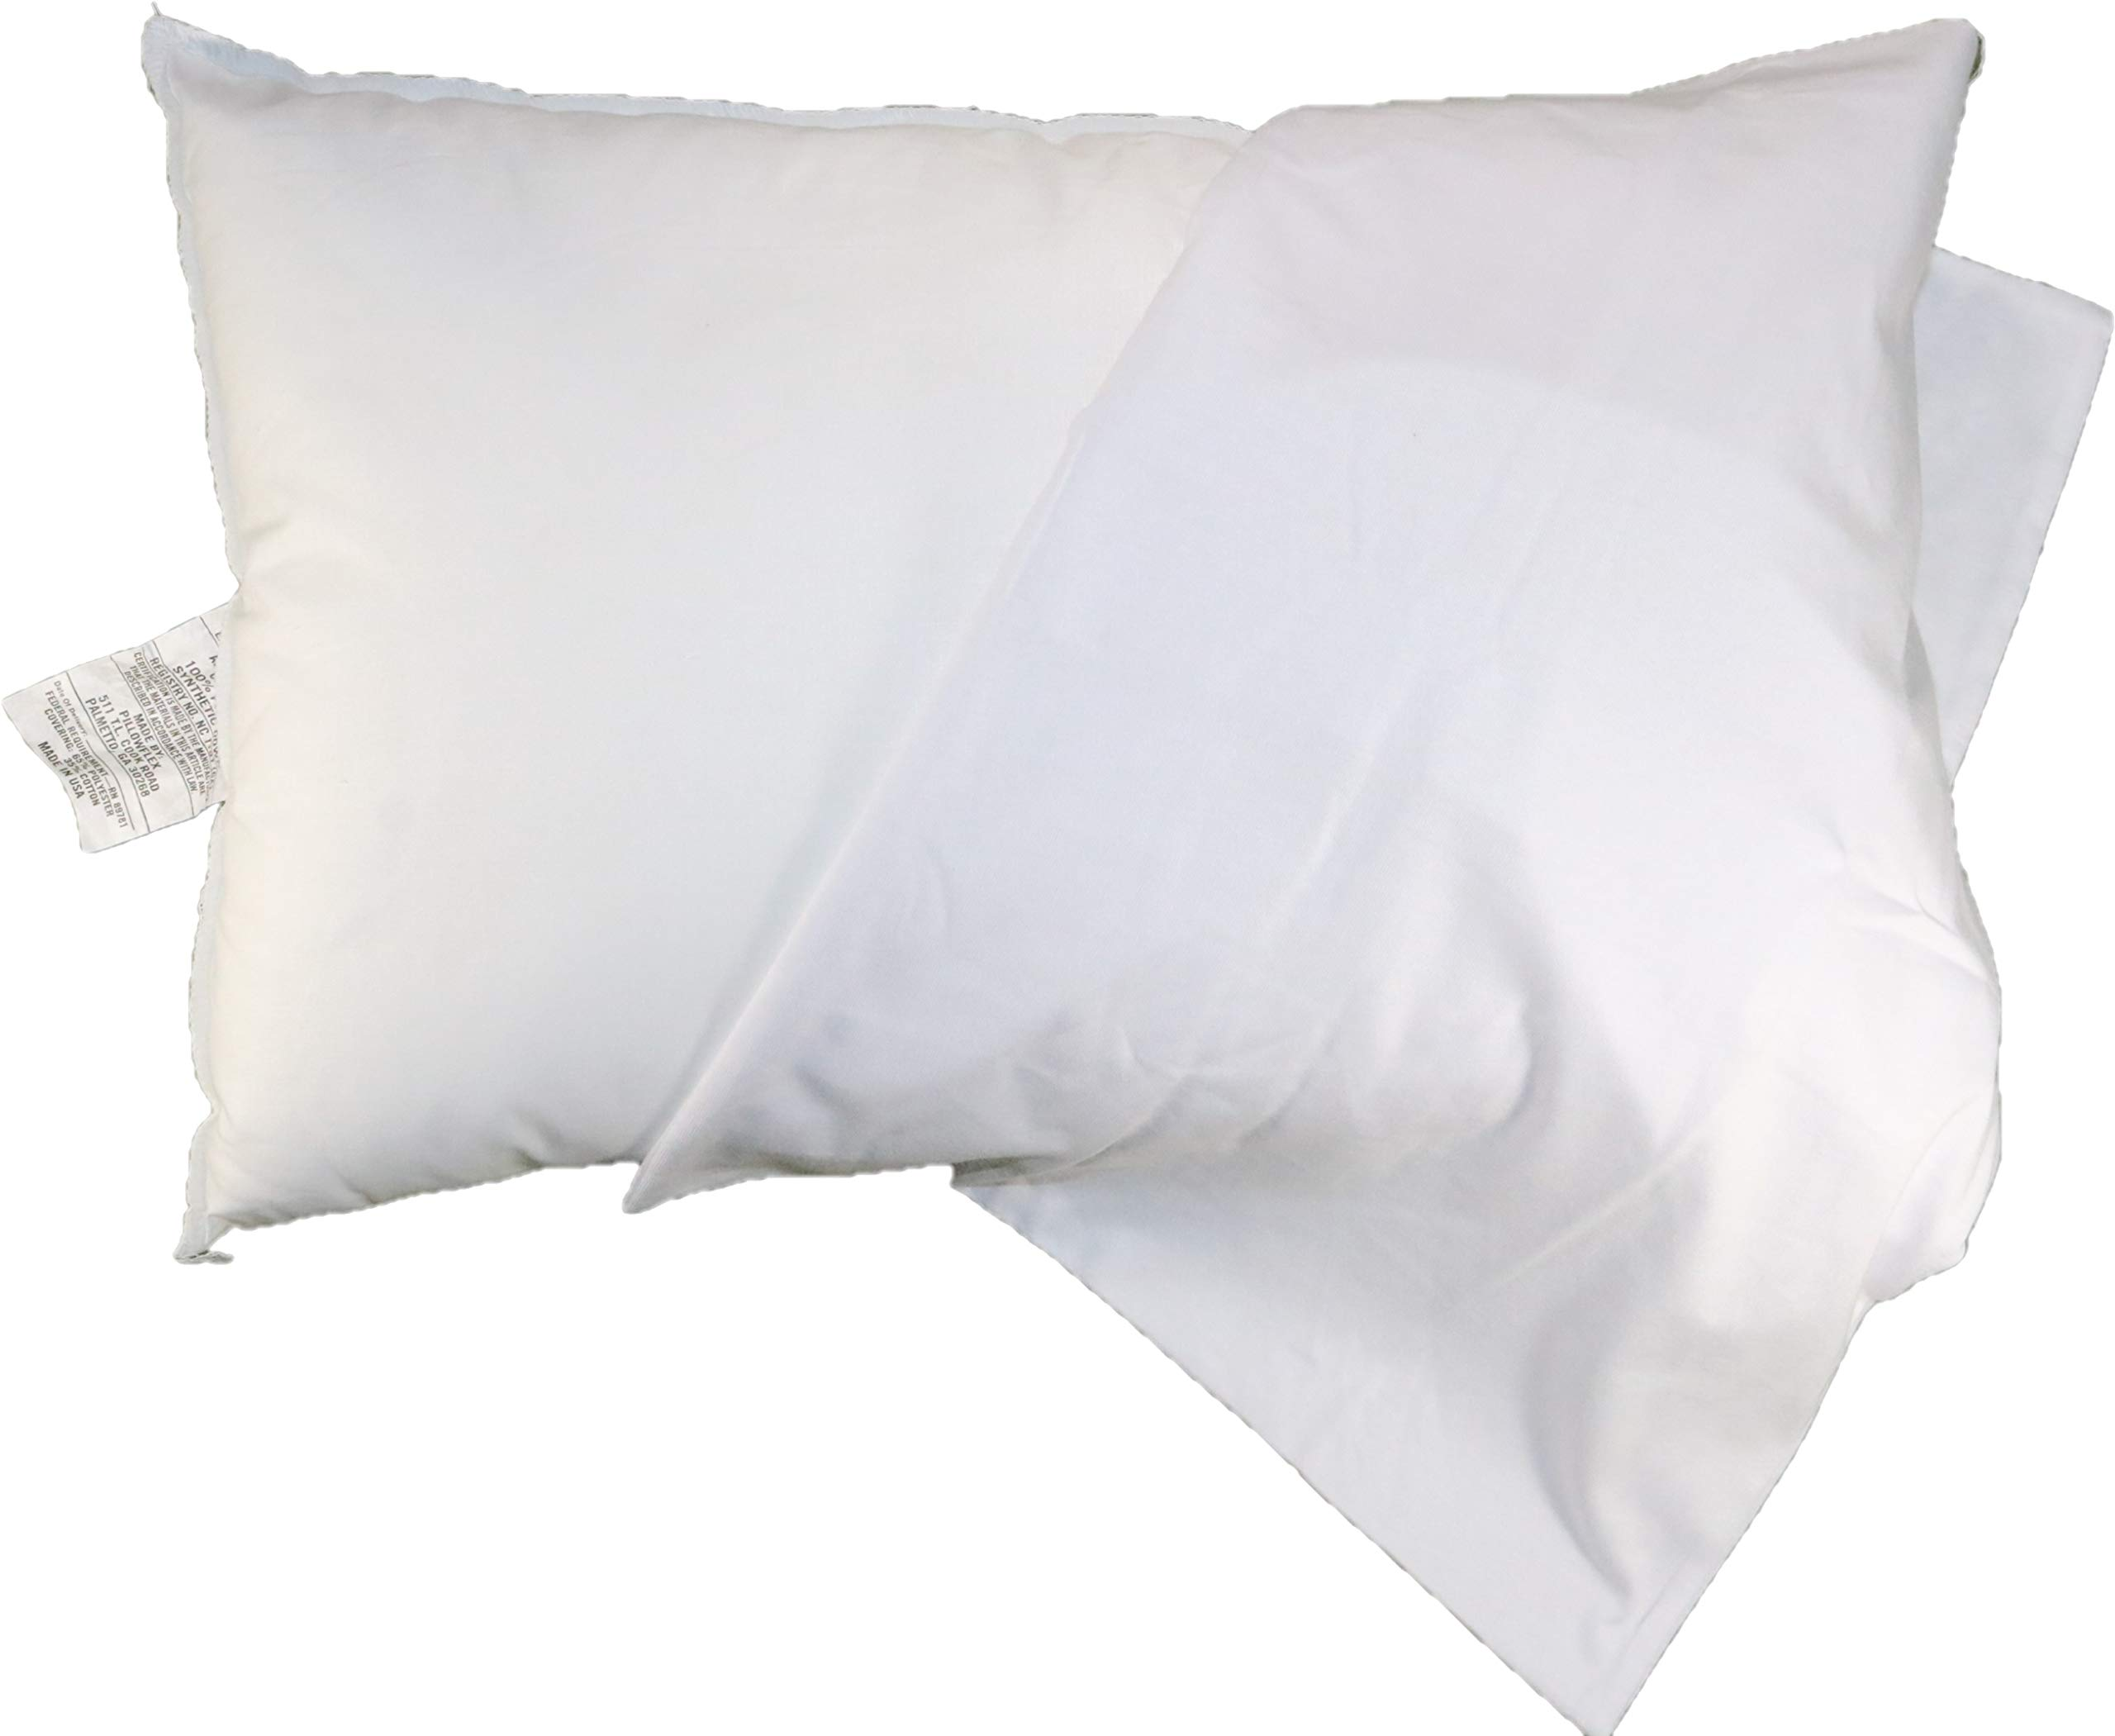 Sophie & Leighanne Toddler Bed Pillow 13'' x 19'' with 100% Cotton Pillowcase by Sophie & Leighanne